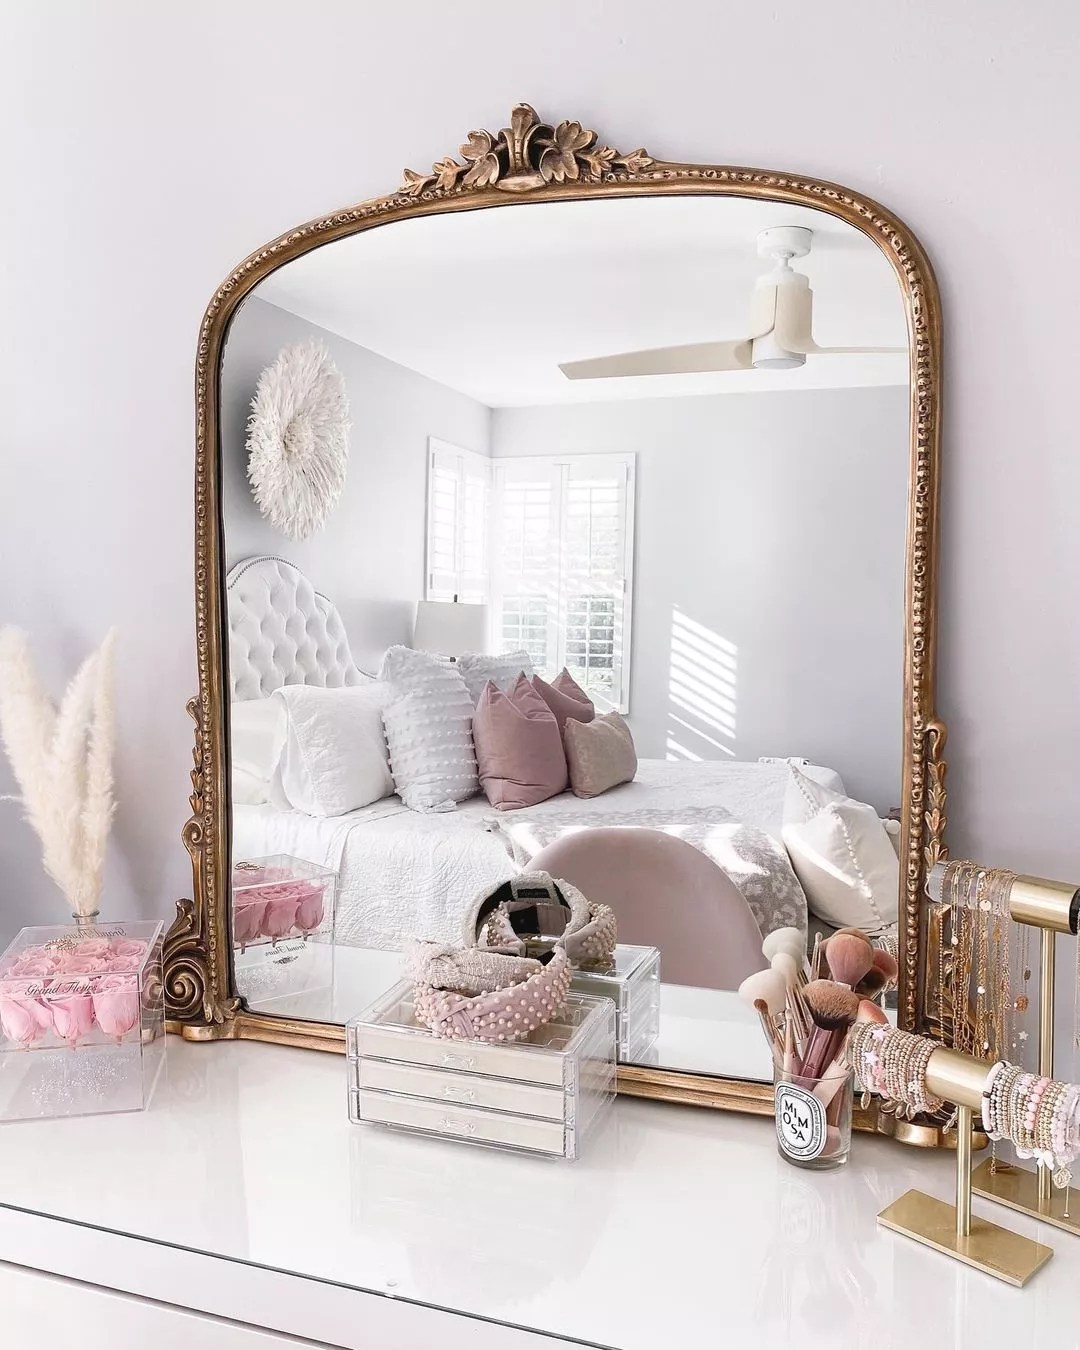 Large mirror with decorative brass finish sitting on dresser. Photo by Instagram User @fancythingsblog